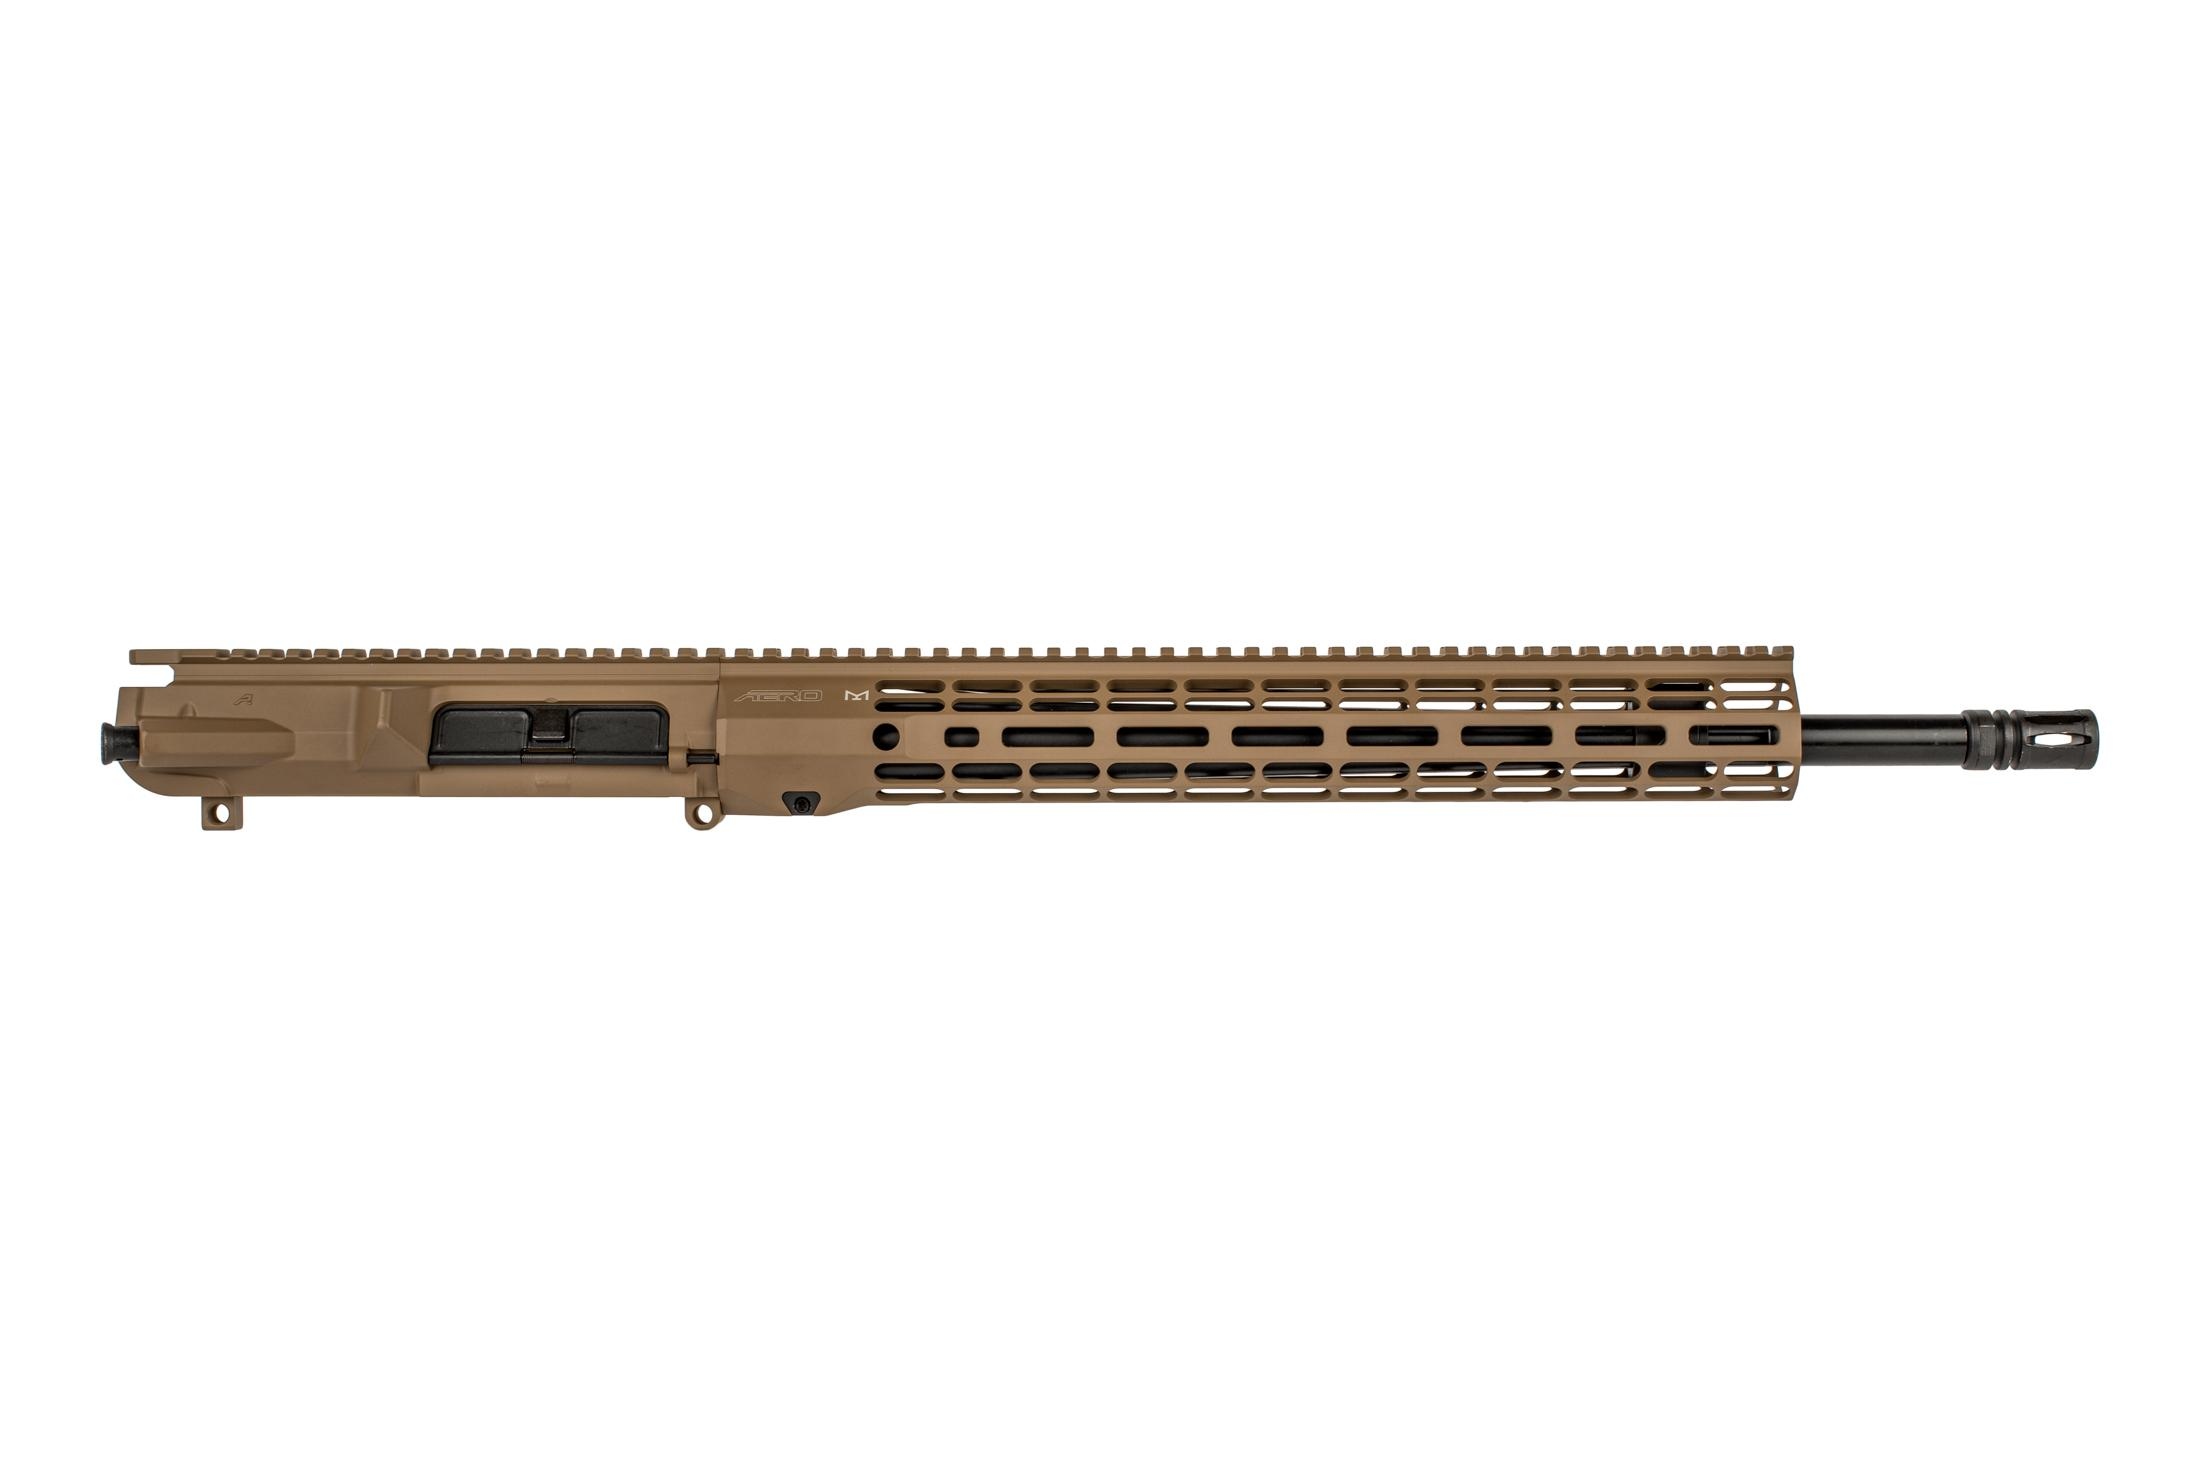 Aero 18 M5 flat dark earth barreled upper receiver in .308 WIN with Atlas R-ONE M-LOK handguard with A2 flash hider